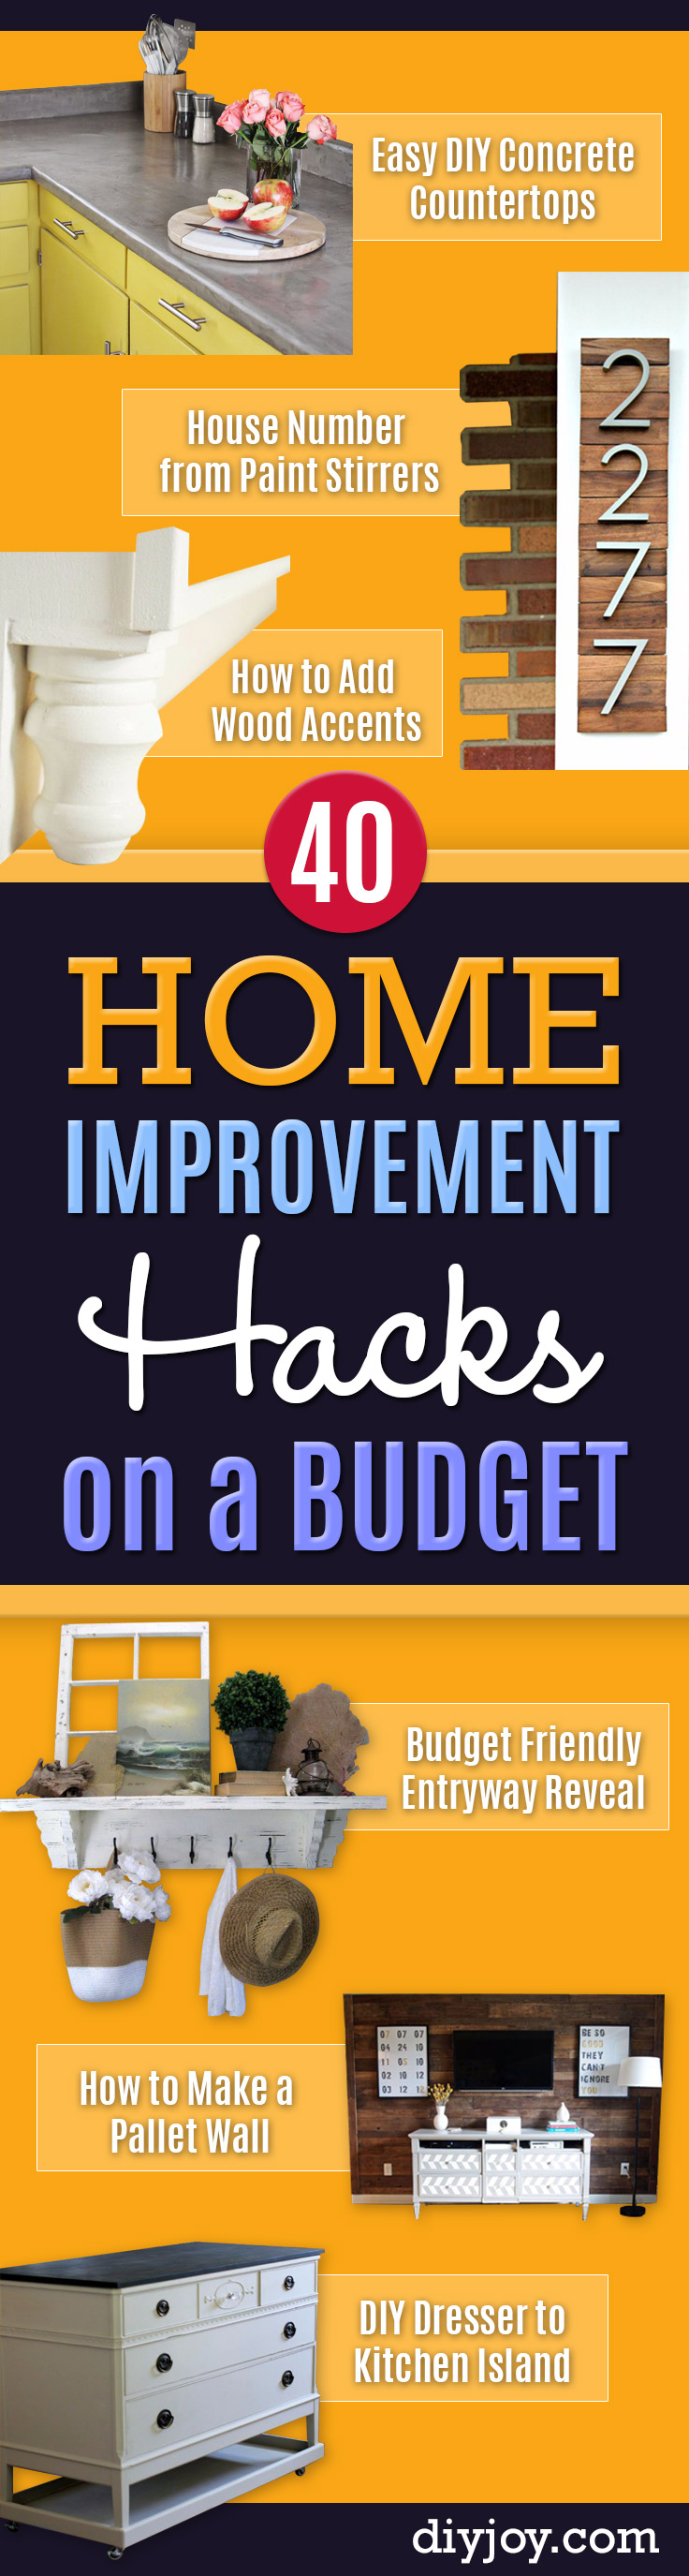 DIY Home Improvement On A Budget - Easy and Cheap Do It Yourself Tutorials for Updating and Renovating Your House - Home Decor Tips and Tricks, Remodeling and Decorating Hacks - DIY Projects and Crafts by DIY JOY #homeimprovement #diyhome #diyideas #homeimprovementideas #diy #homeimprovement #diyhome #diyideas #homeimprovementideas http://diyjoy.com/diy-home-improvement-ideas-budget